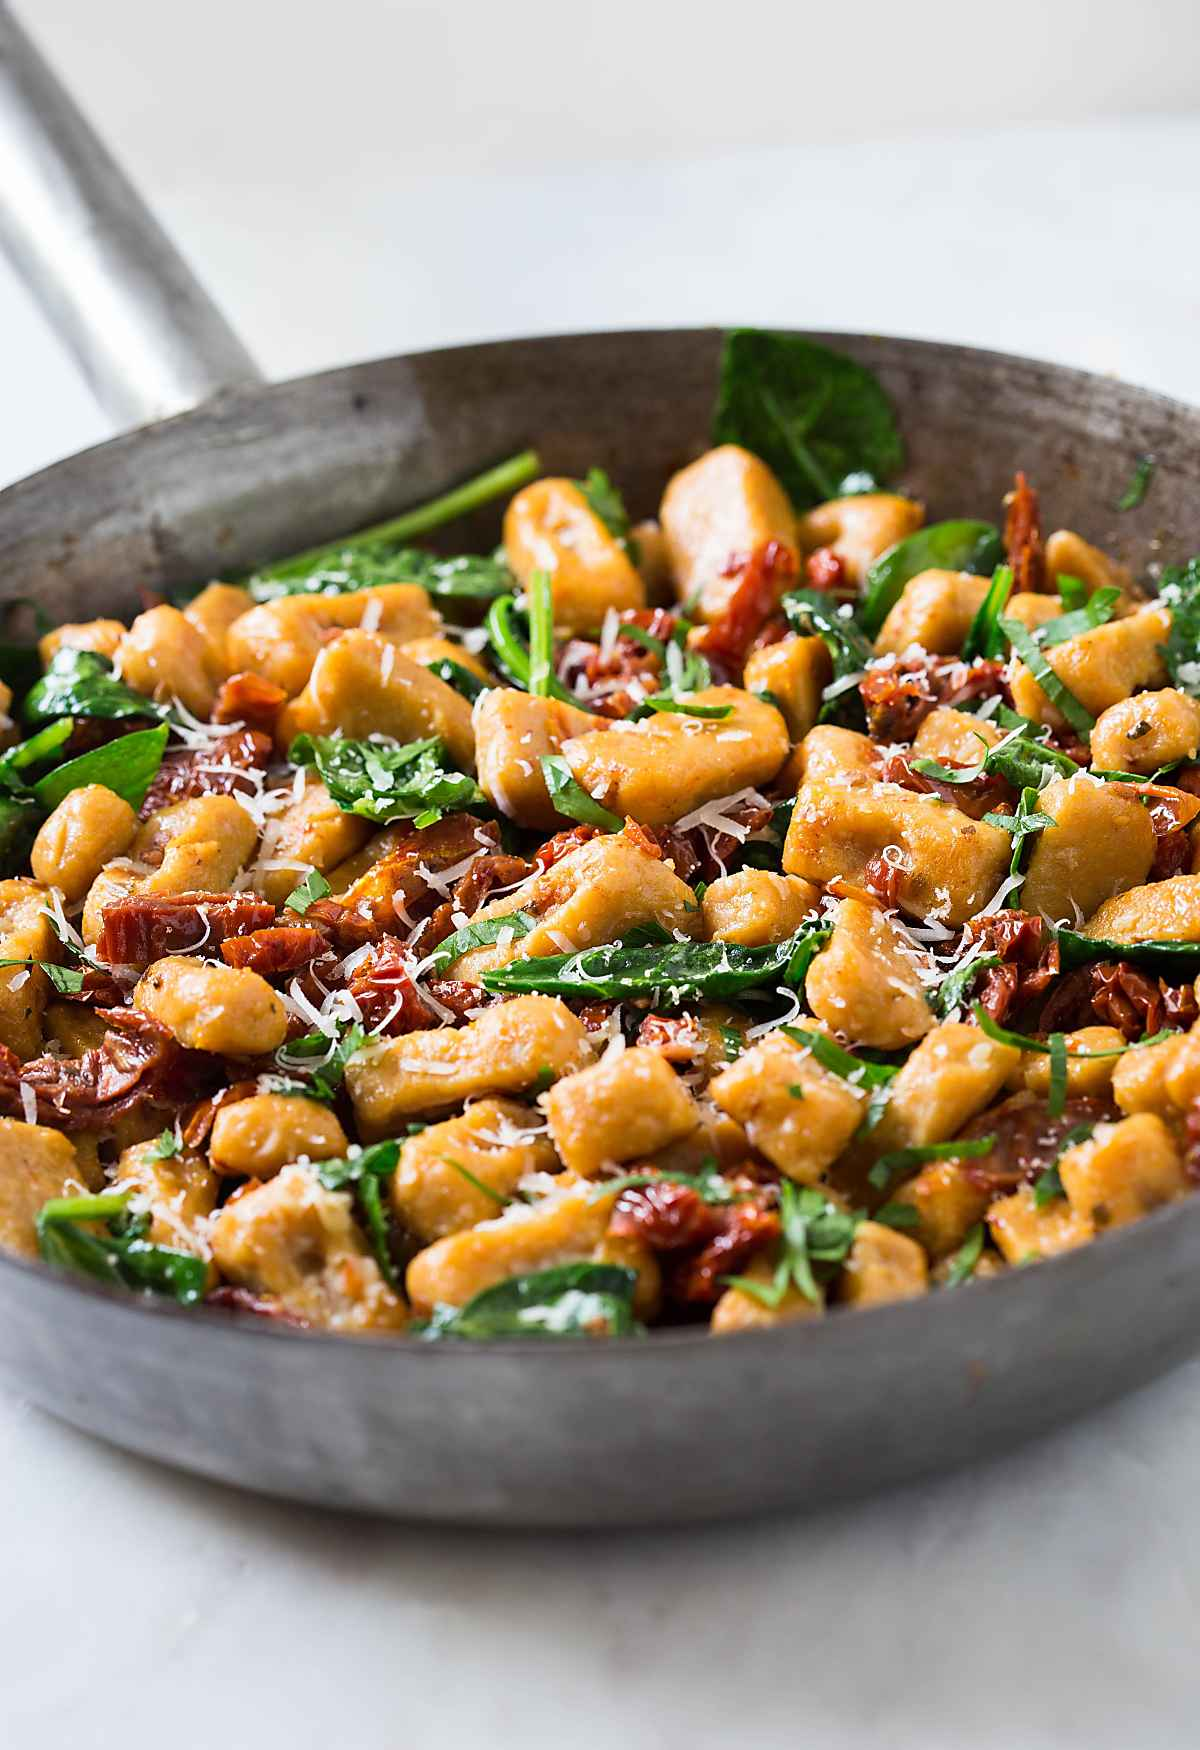 Stir-fry sweet potato gnocchi with spinach and sun-dried tomatoes to make the easiest dinner